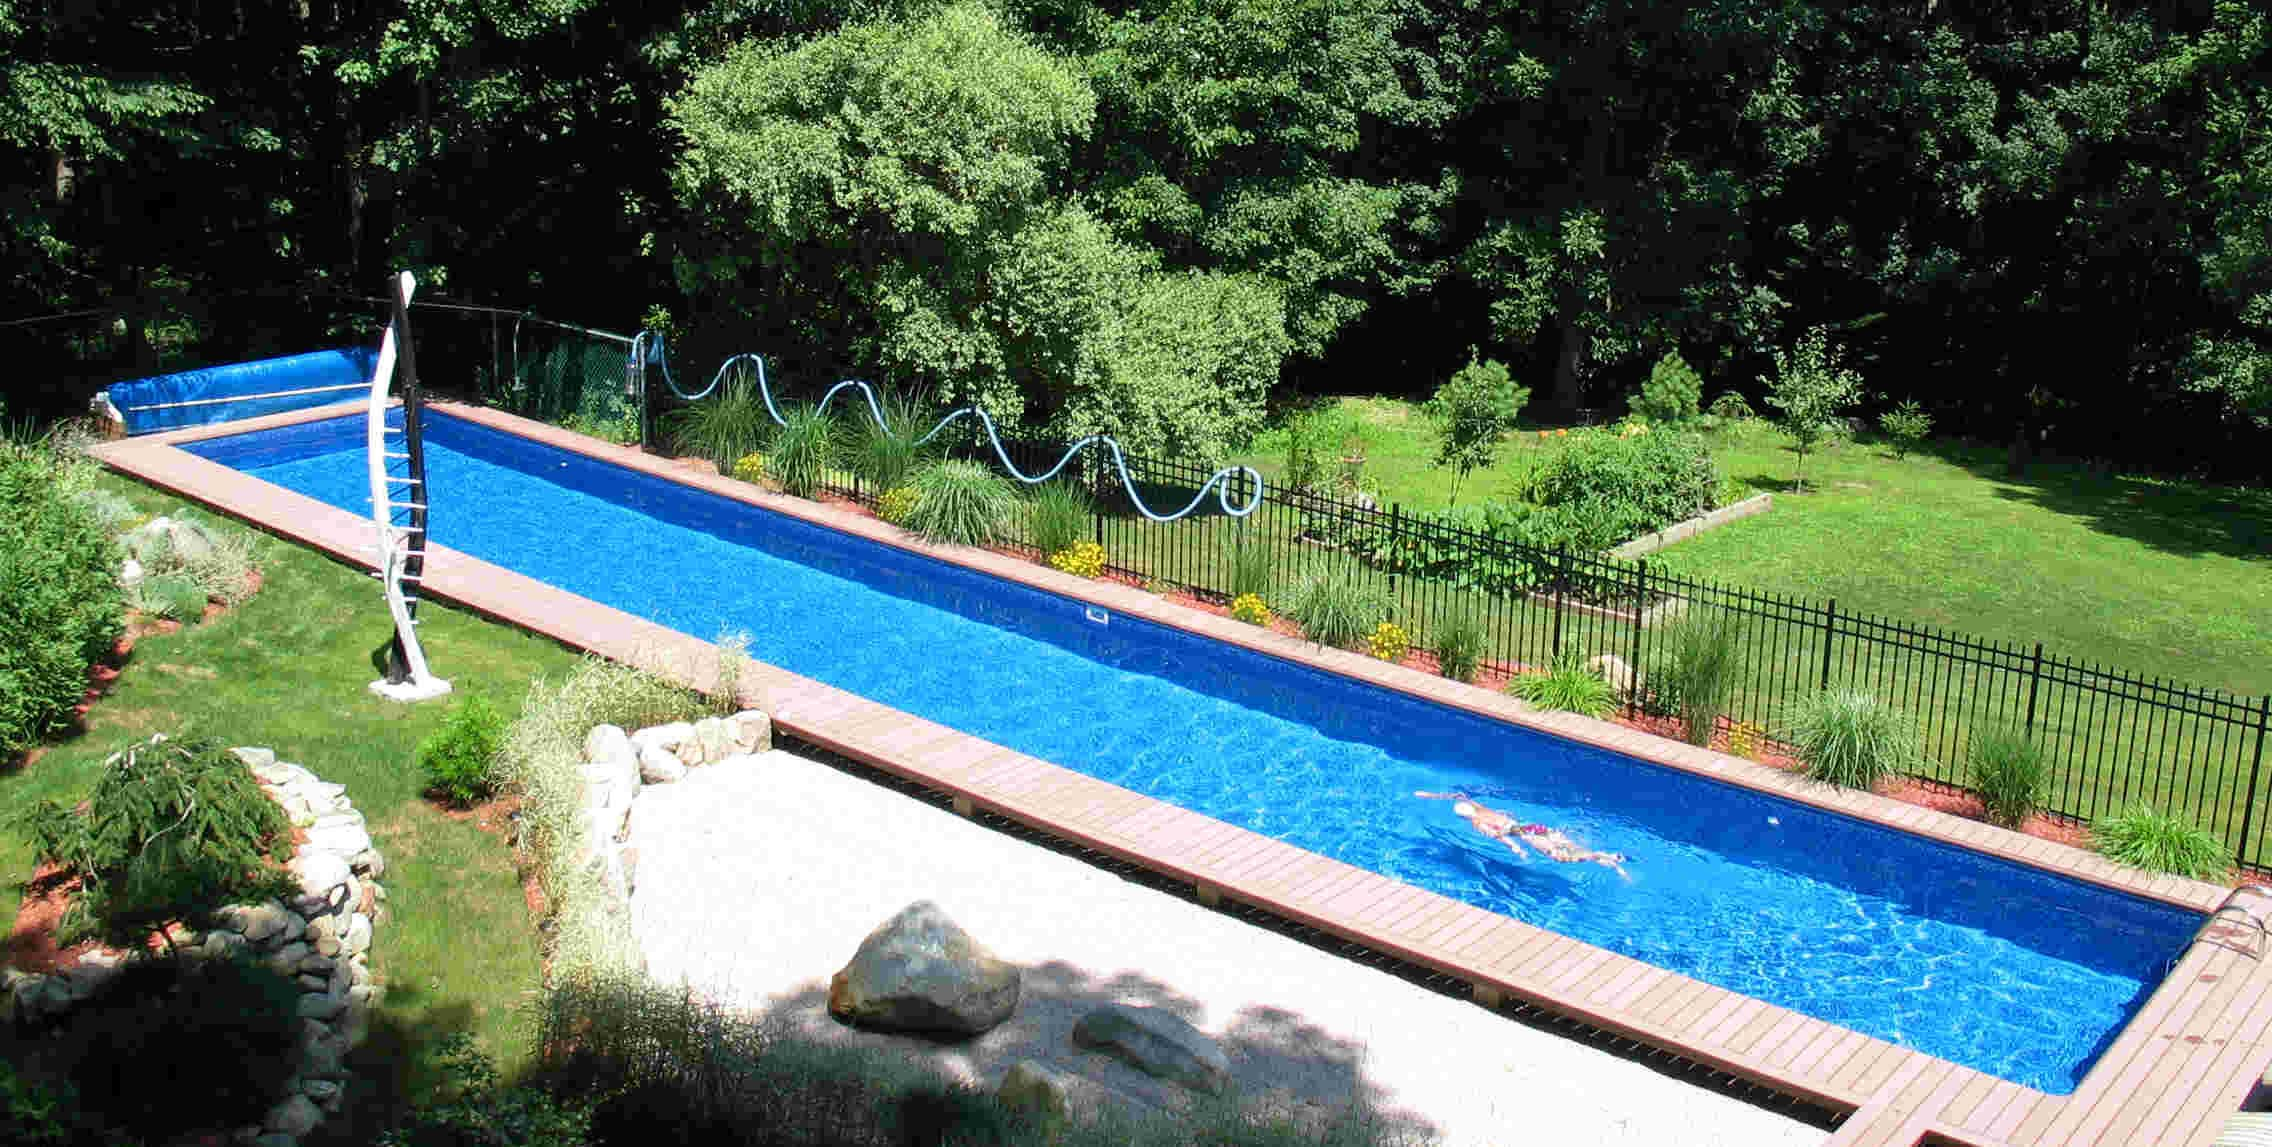 Diy inground swimming pool backyard design ideas for Swimming pool ideas for backyard